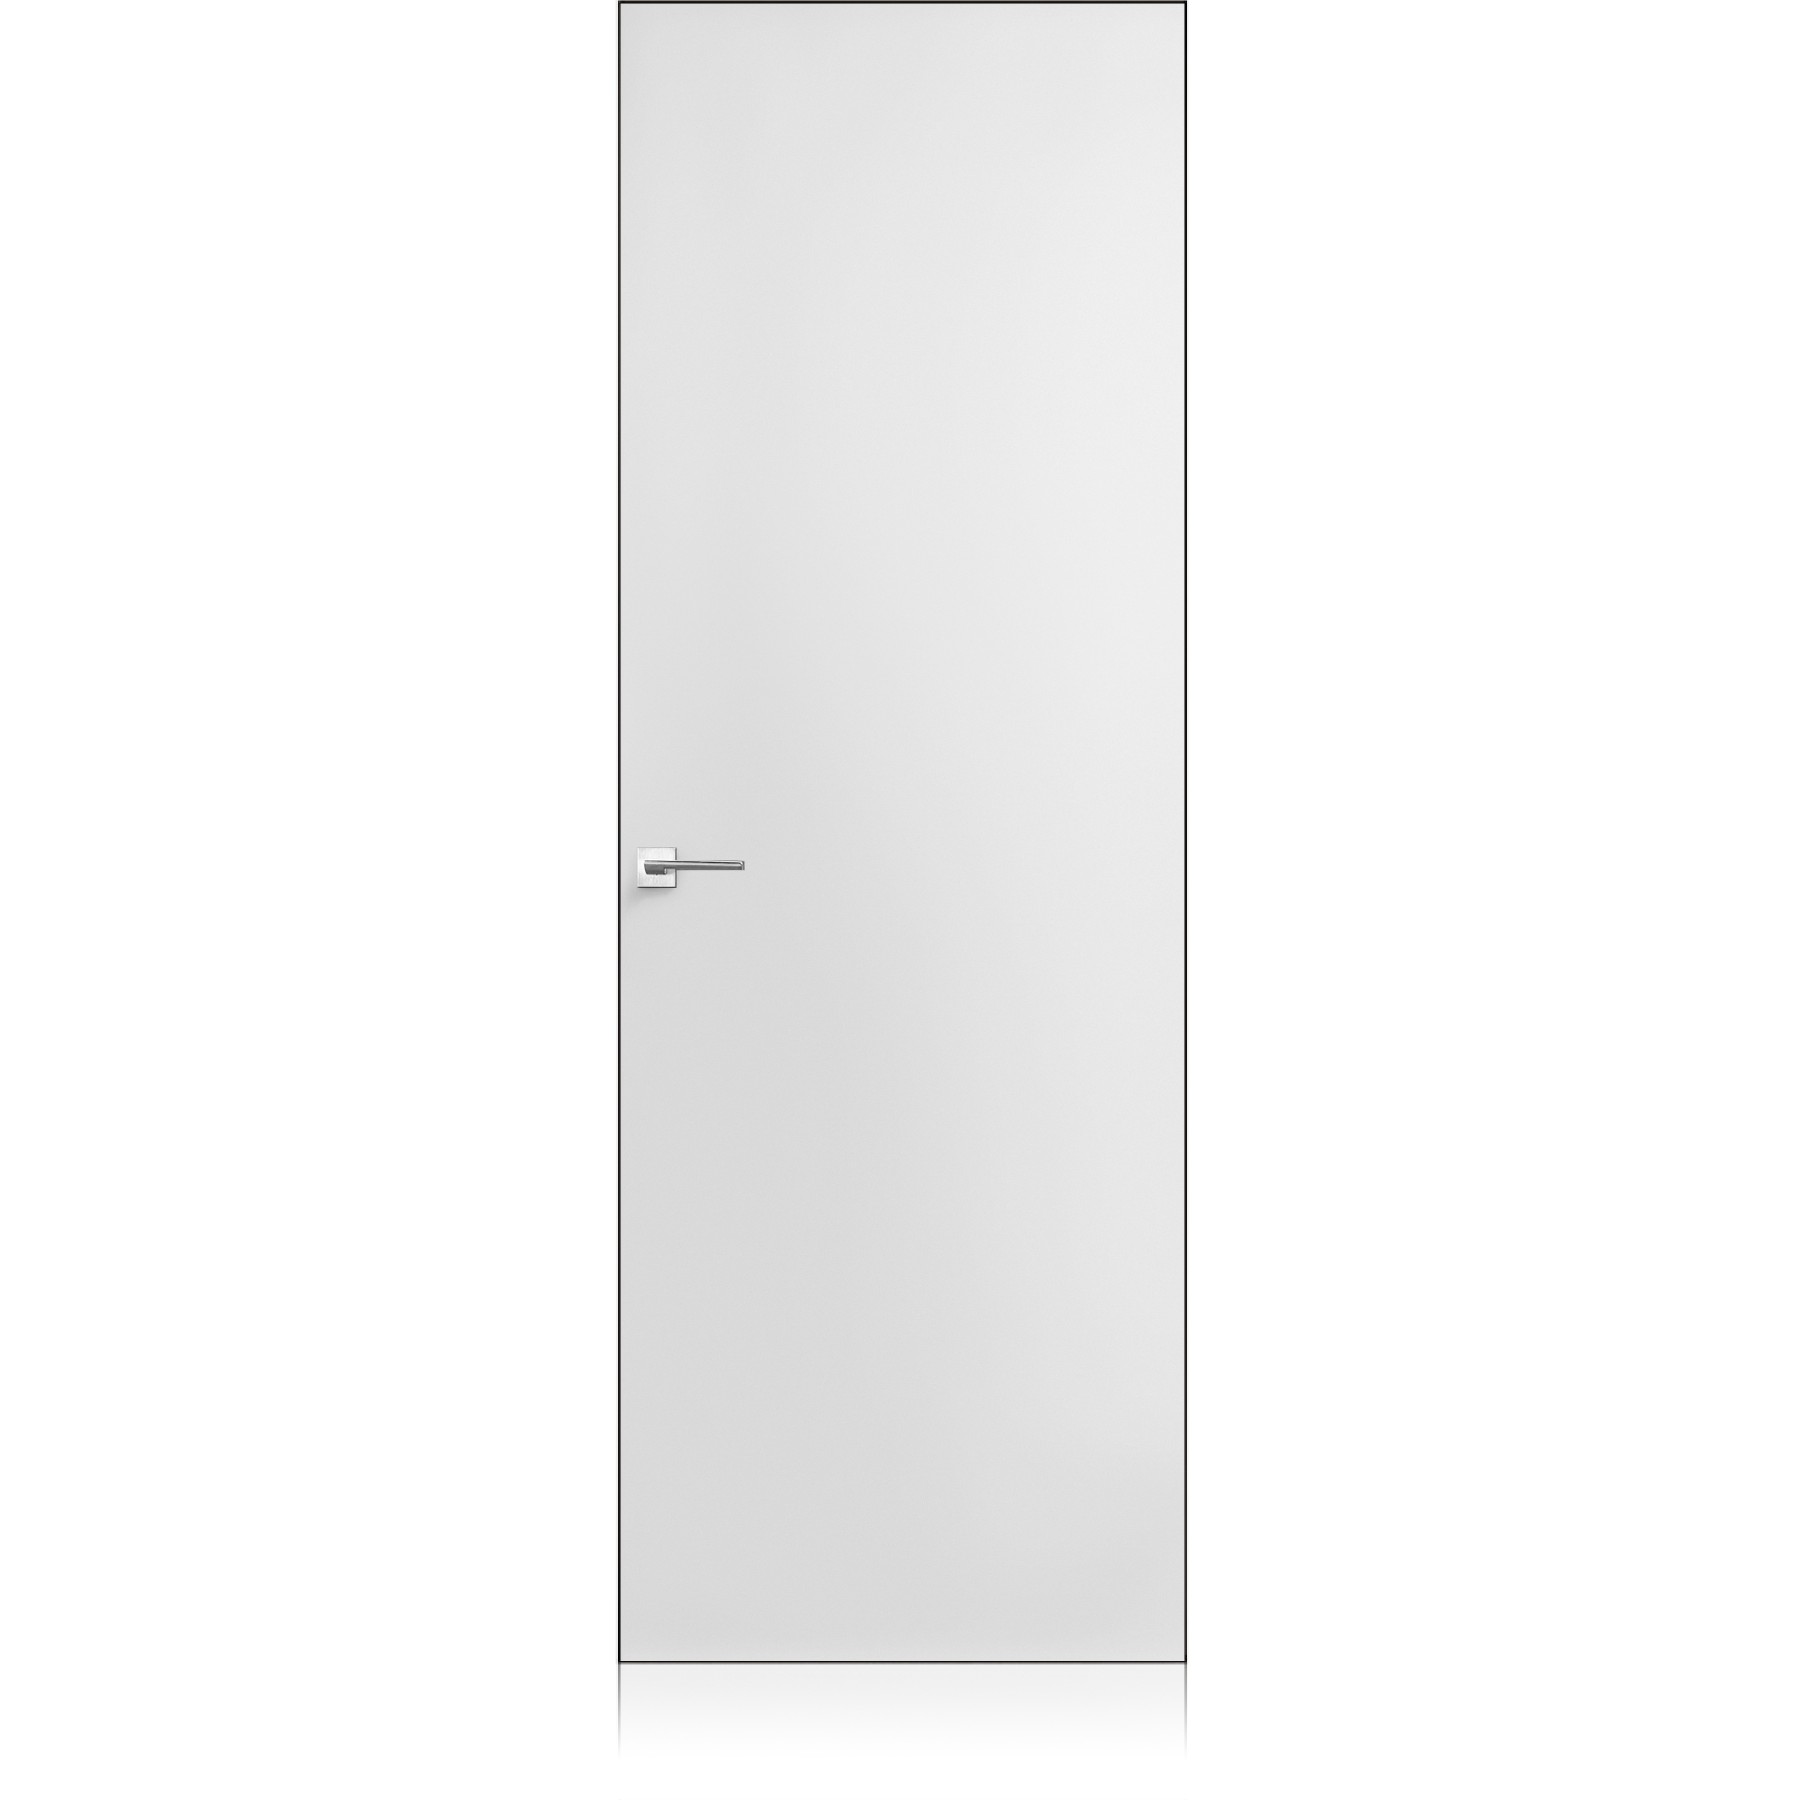 Equa Zero bianco optical door